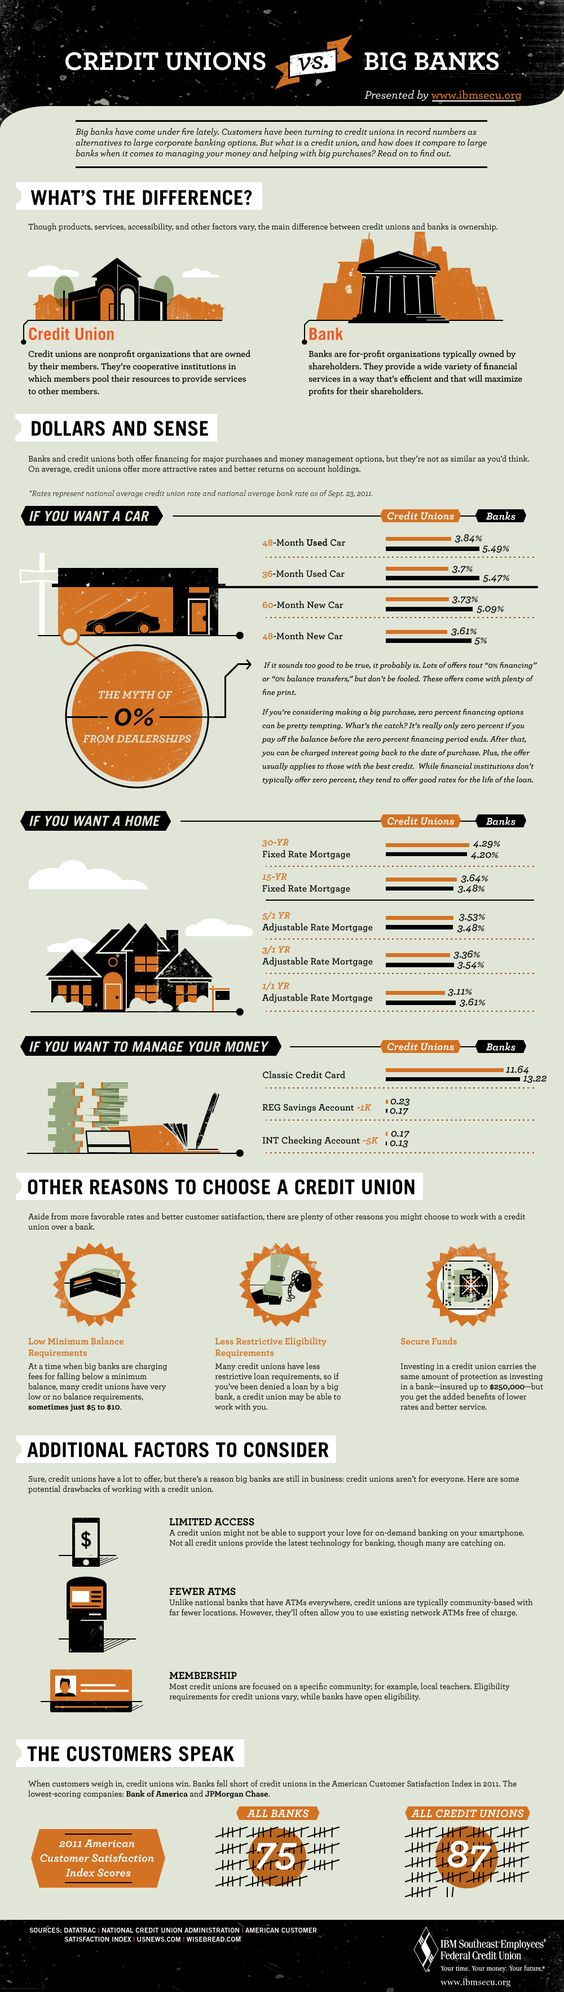 Infographic: Credit Unions vs. Big Banks – How Do They Stack Up?